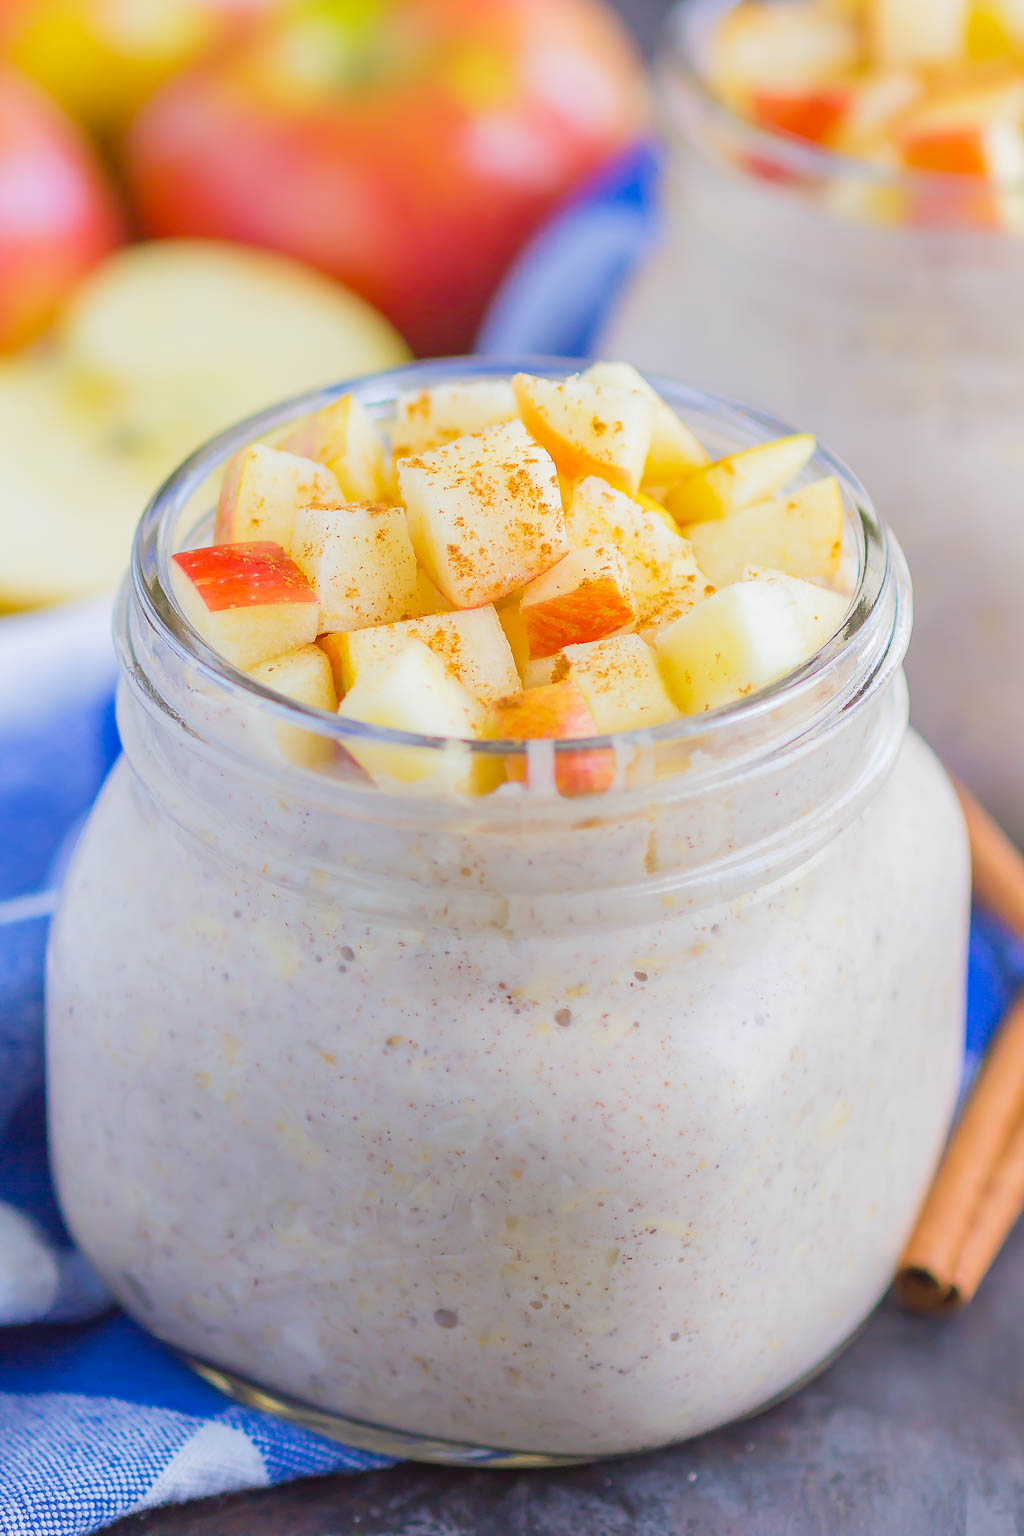 Apple Pie Overnight Oats are a simple, make-ahead breakfast for busy mornings. With just five minutes of prep time and no oven required, this hearty dish is filled with cozy flavors and perfect to keep you going all morning long! #overnightoats #oats #oatmeal #appleovernightoats #applepie #applebreakfast #makeahead #makeaheadbreakfast